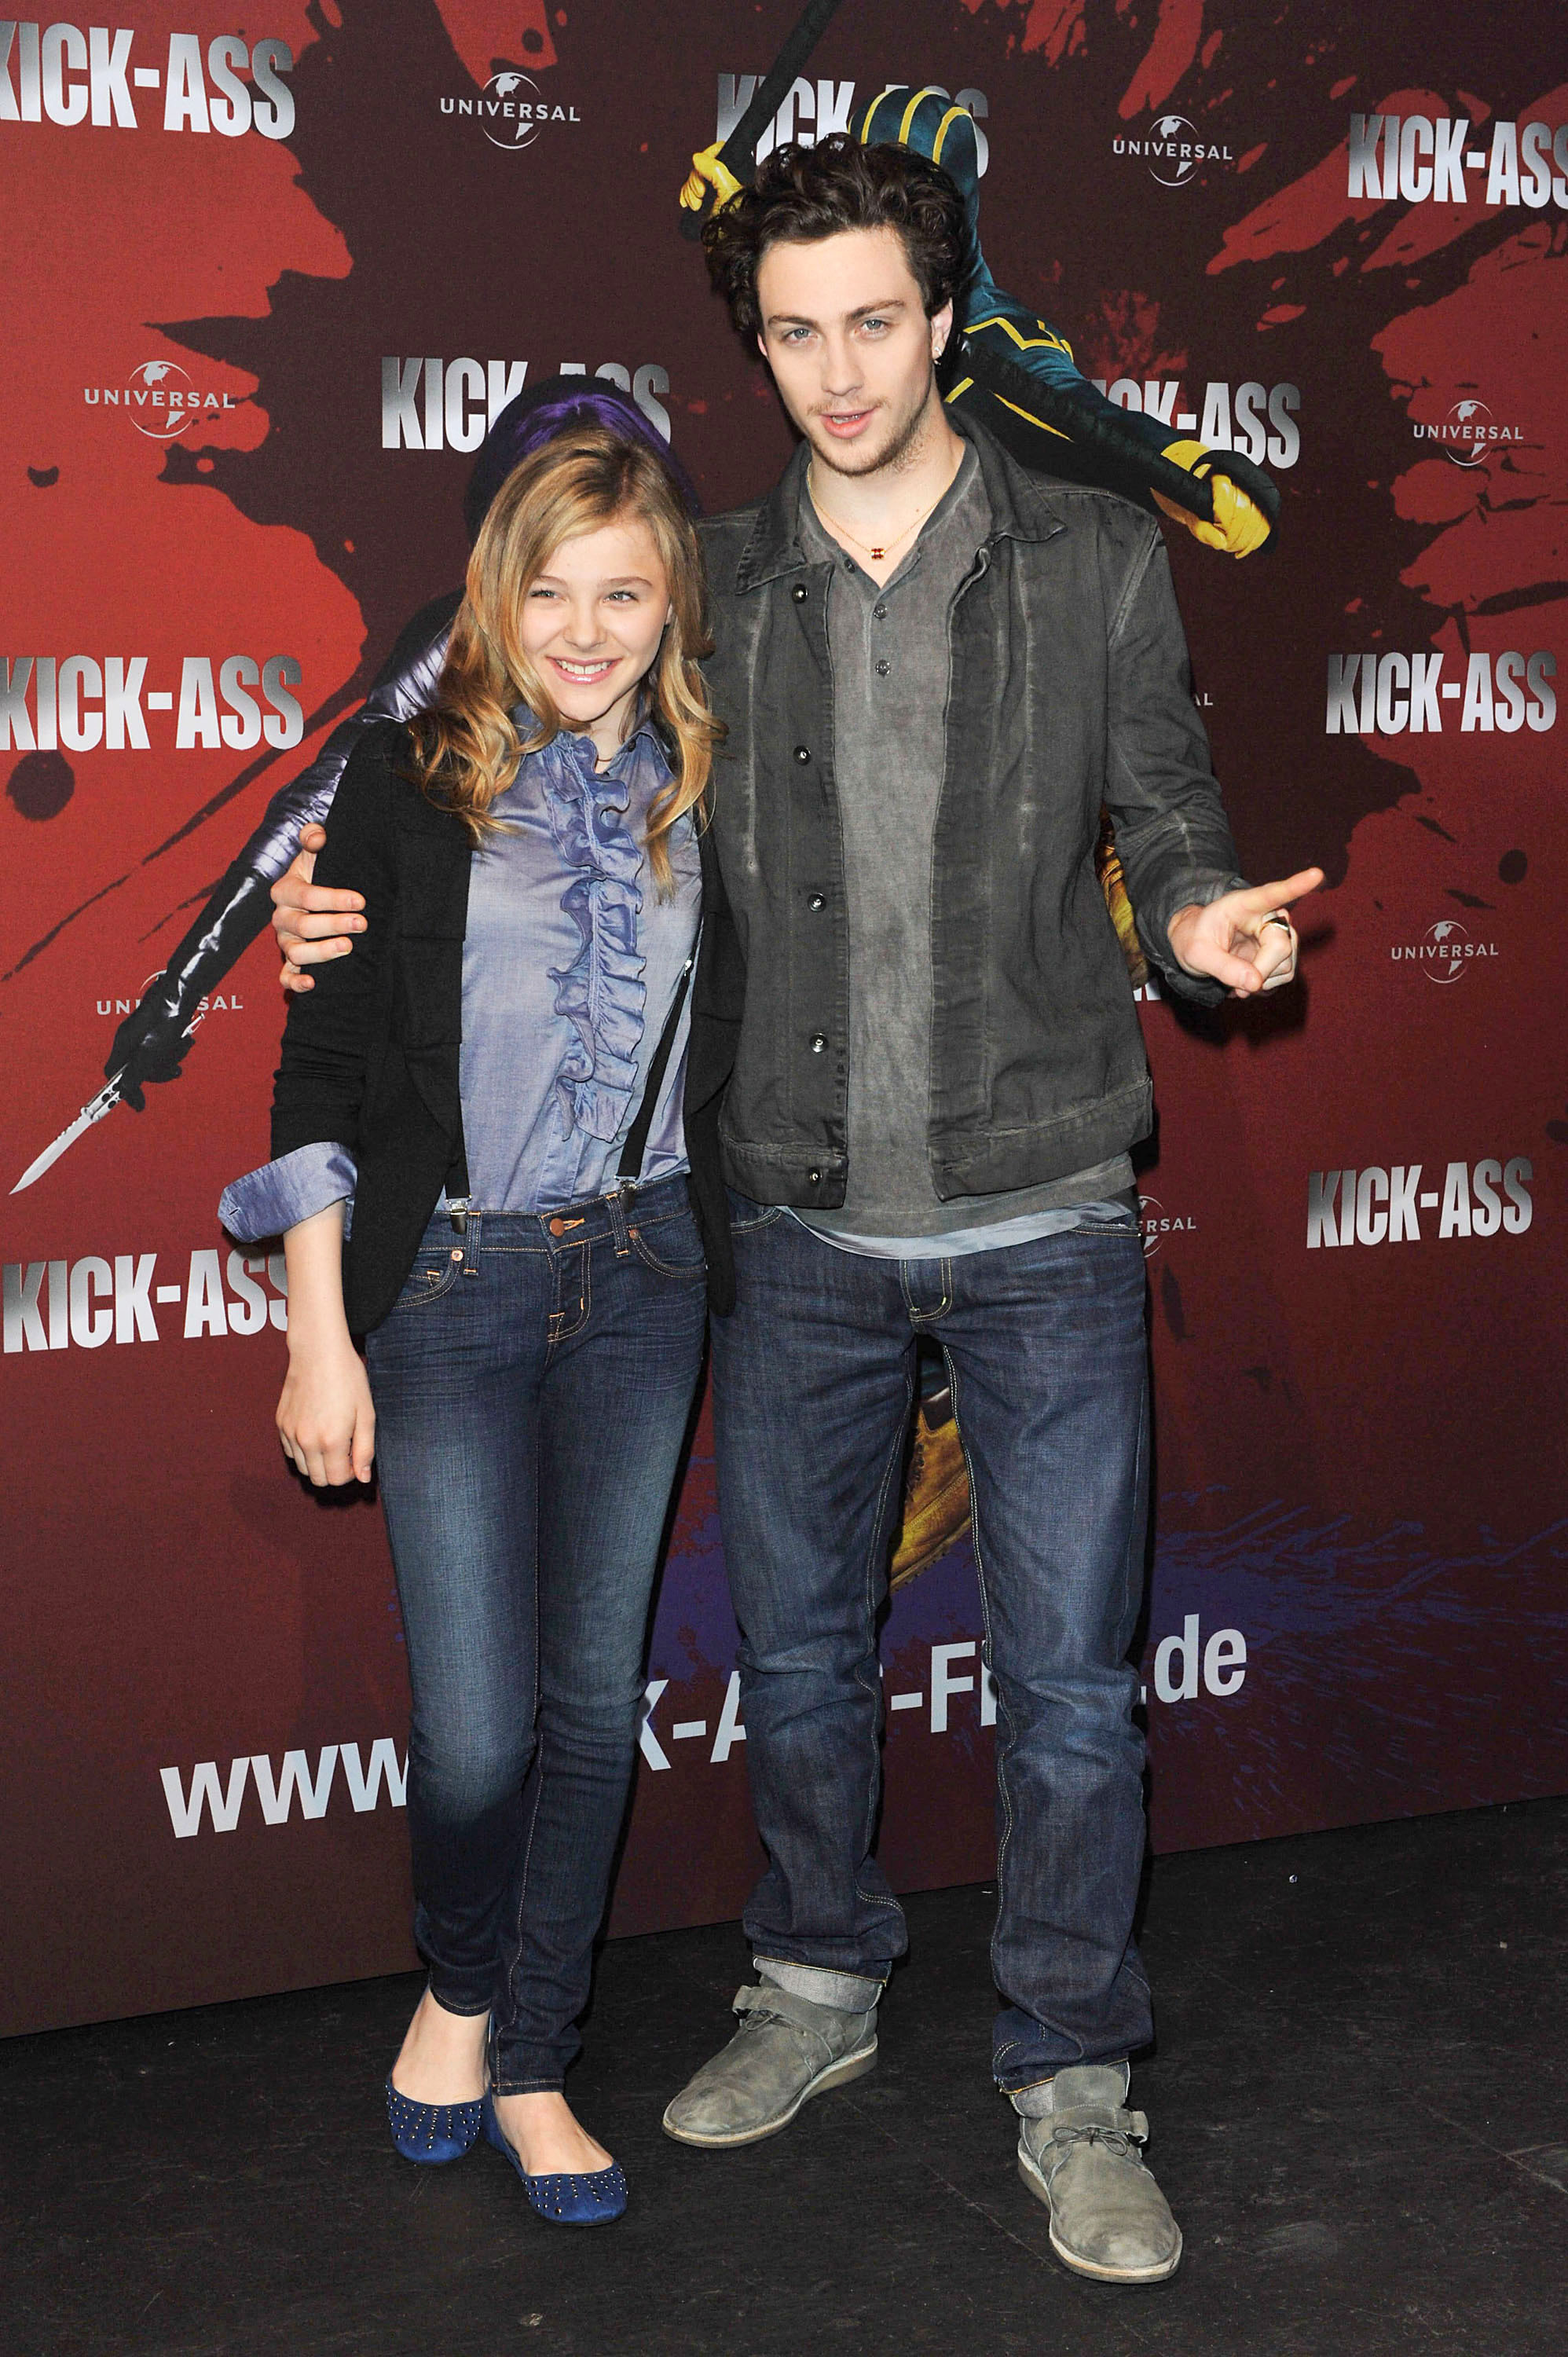 photos of aaron johnson and chloe moretz promoting kick